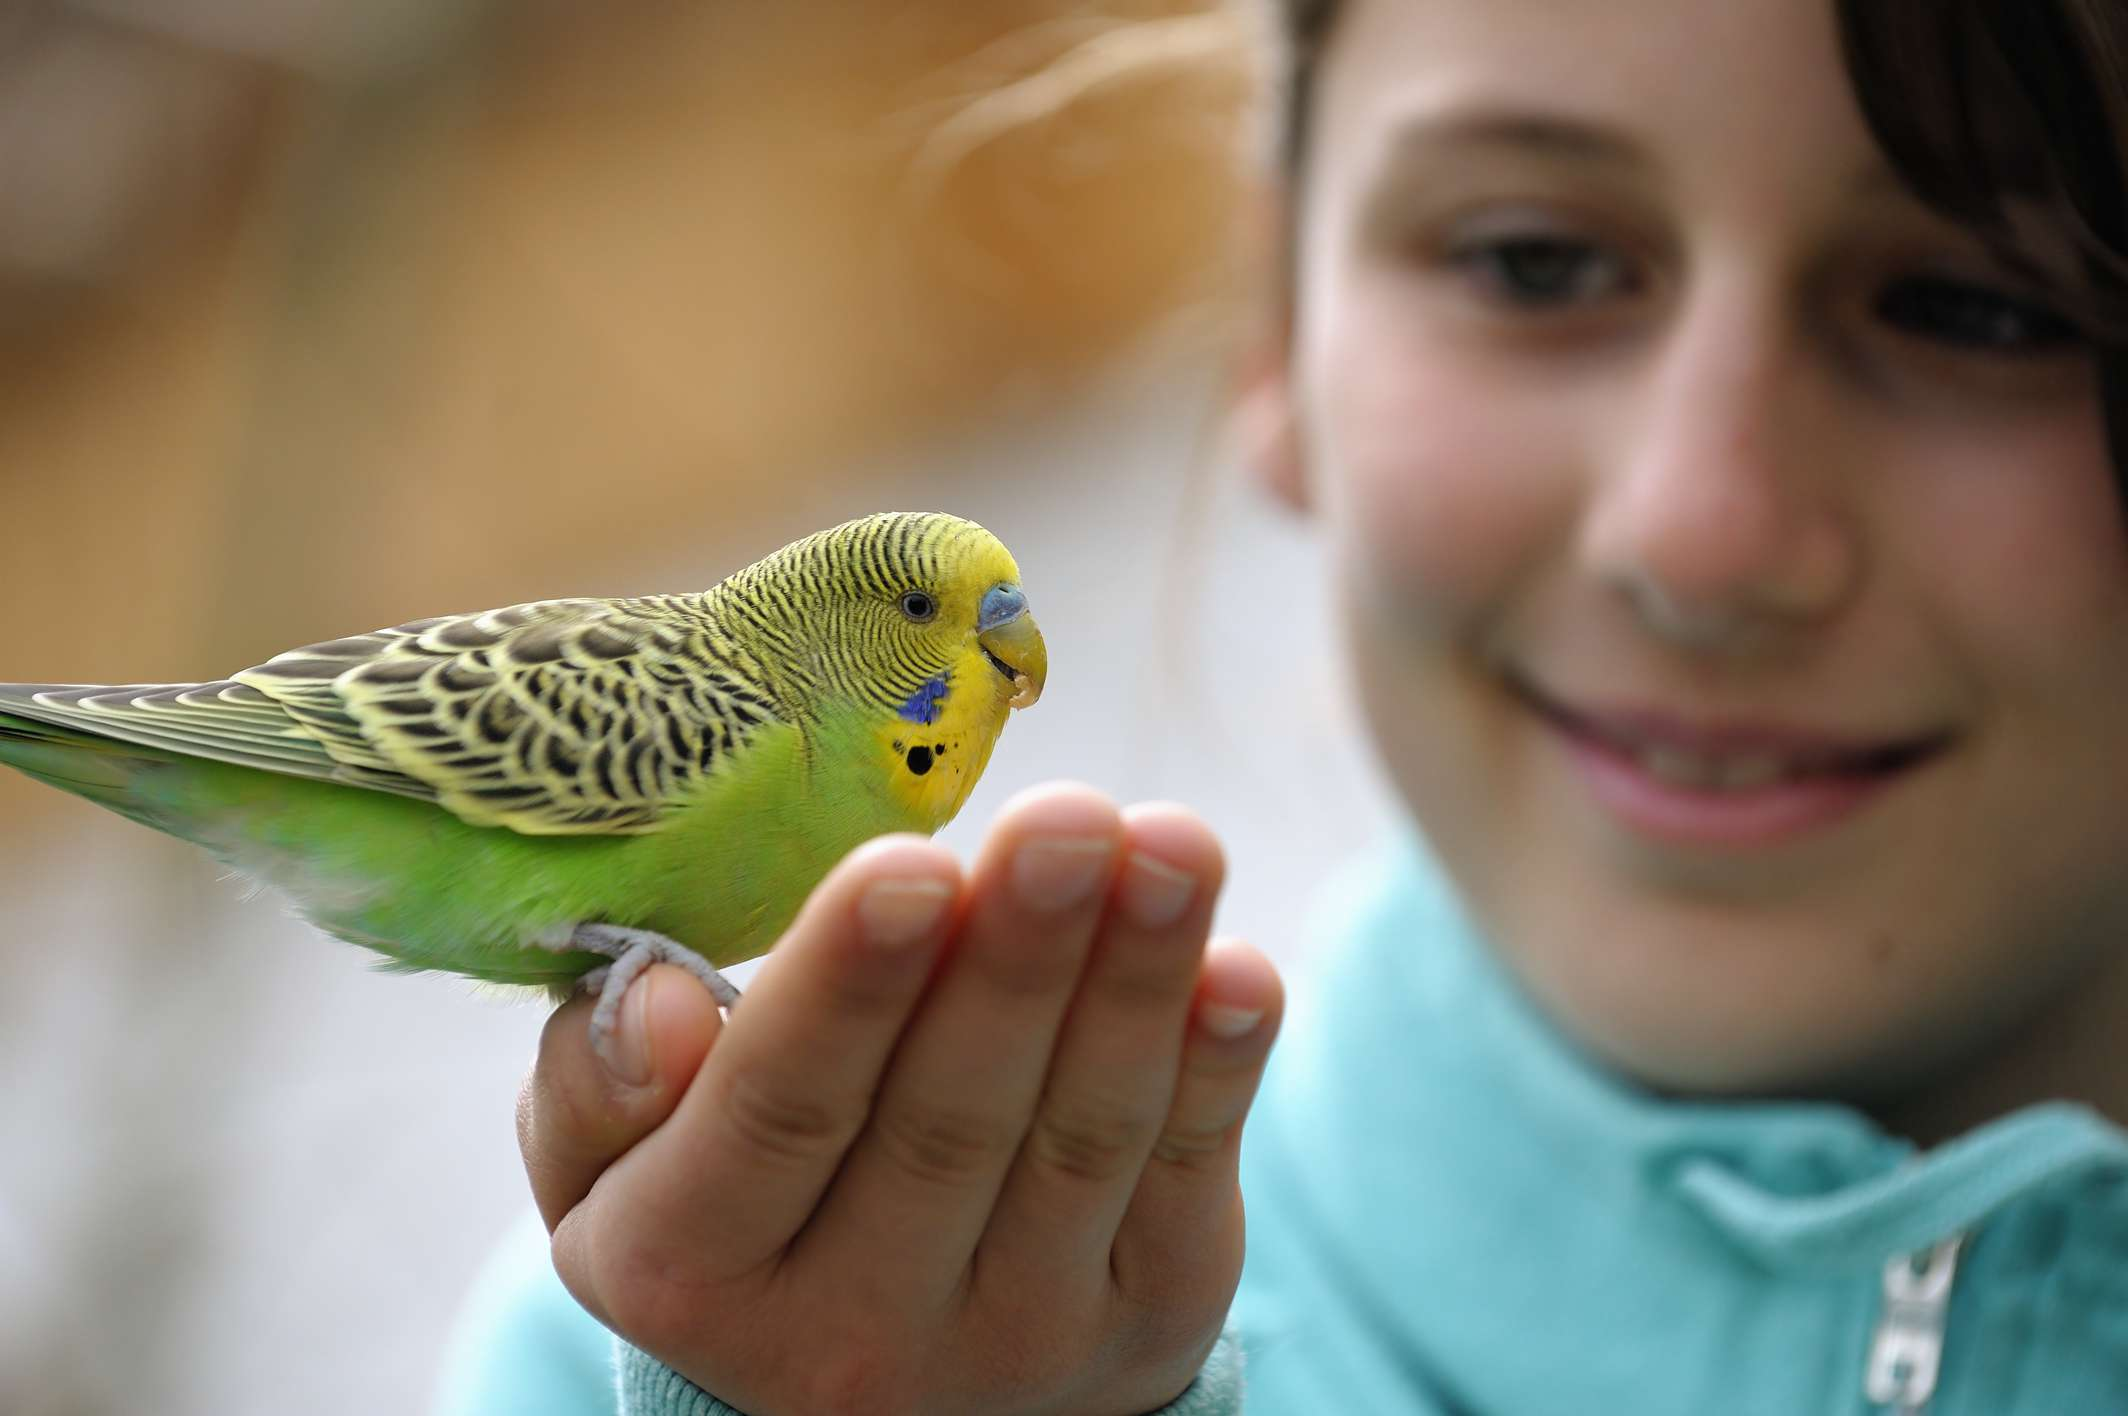 Girl with a green budgie sitting on her hand